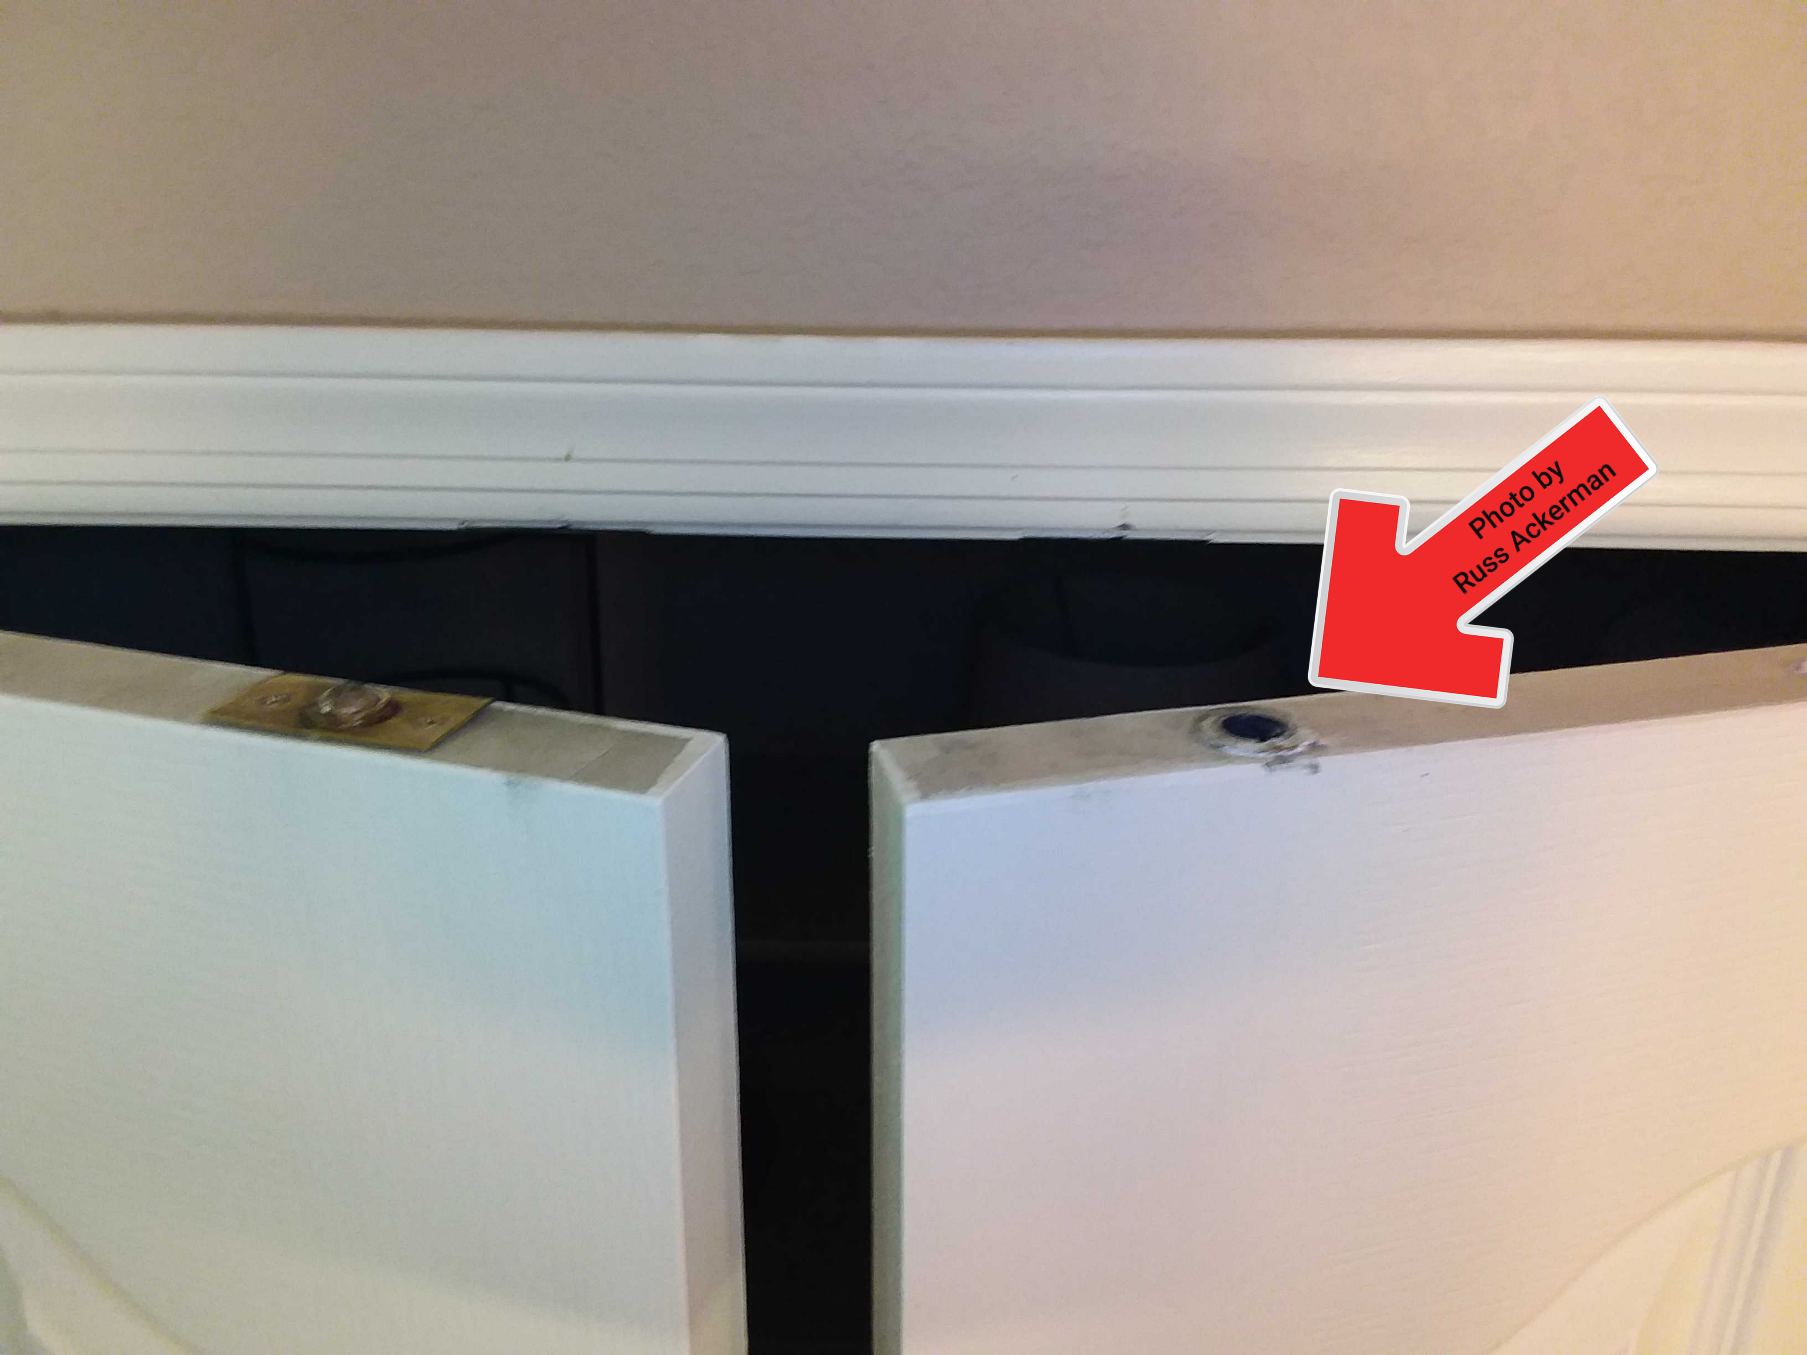 Missing hardware at the top of a pantry door will prevent the door from staying closed. Under $5 and 5-min to repair.